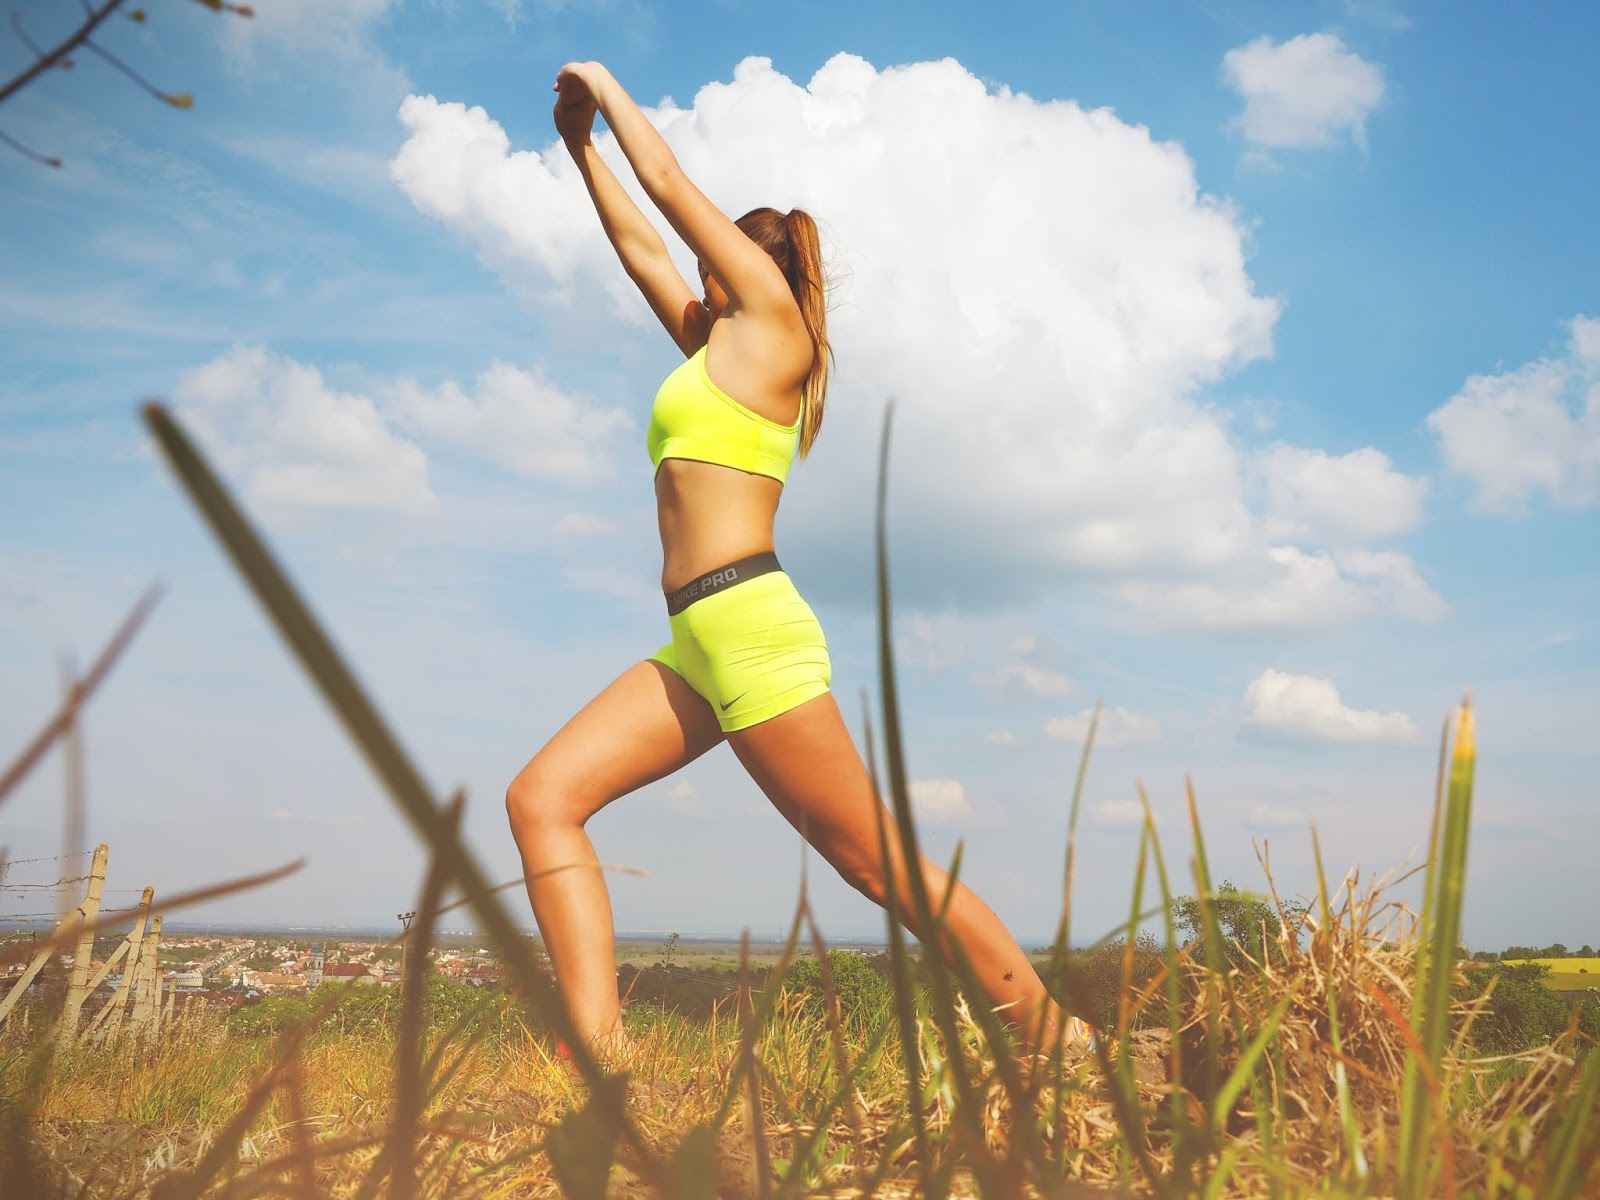 QUICKEST WAY TO LOSE WEIGHT : 5 SIMPLE STEPS